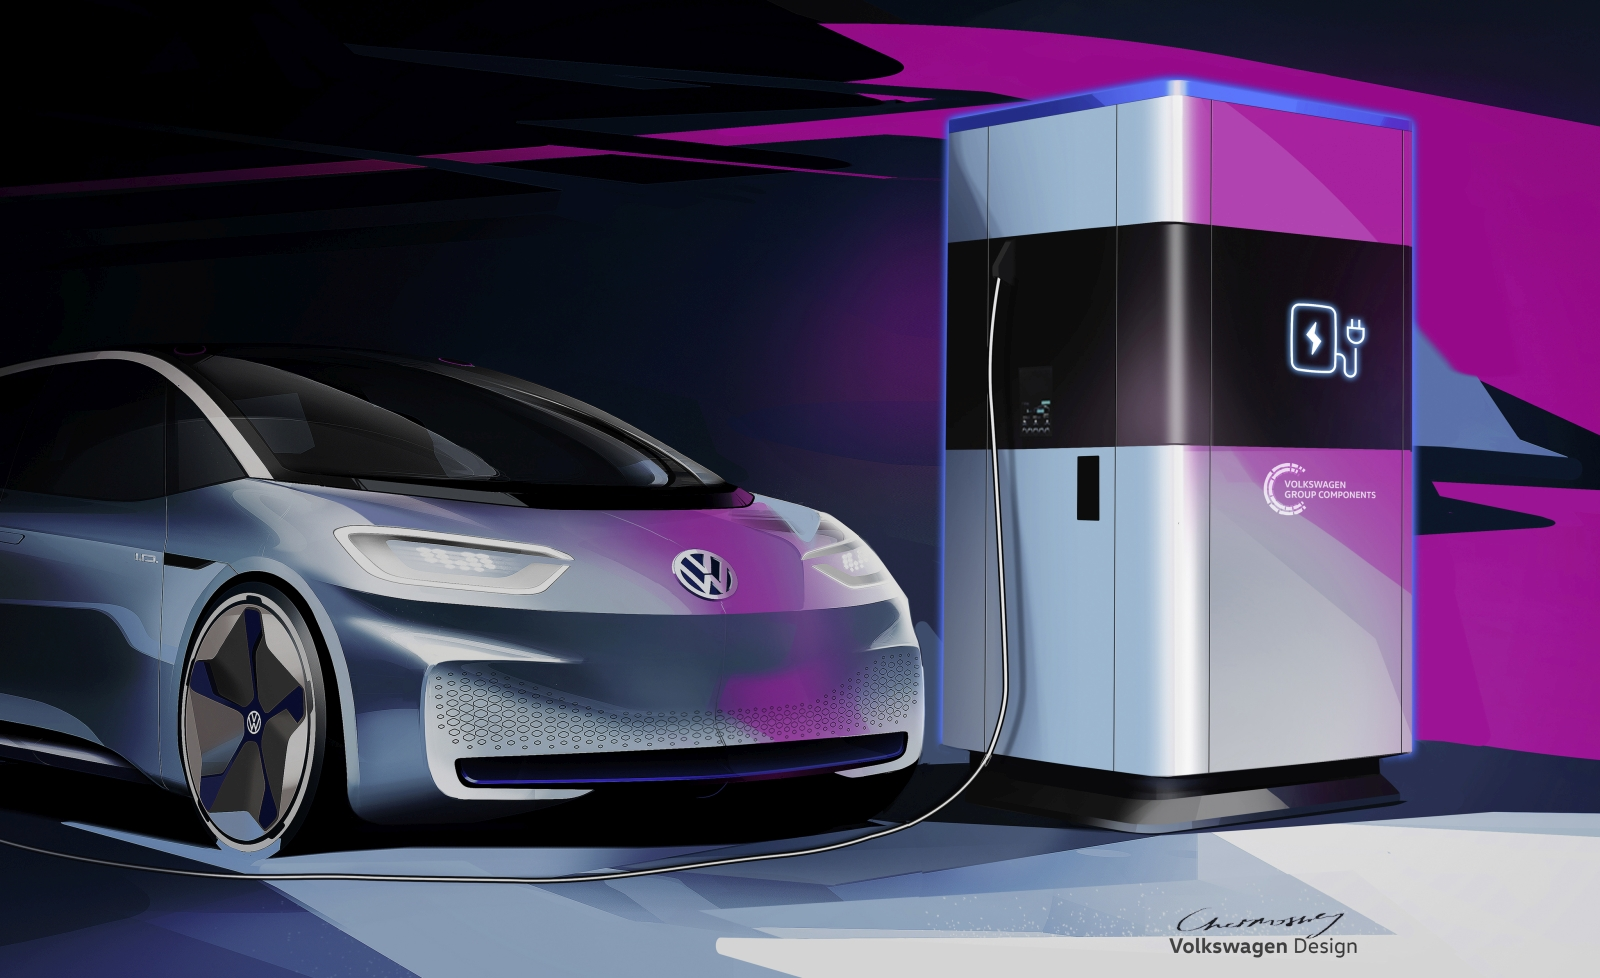 Power bank for electric cars – the mobile quick charging stati